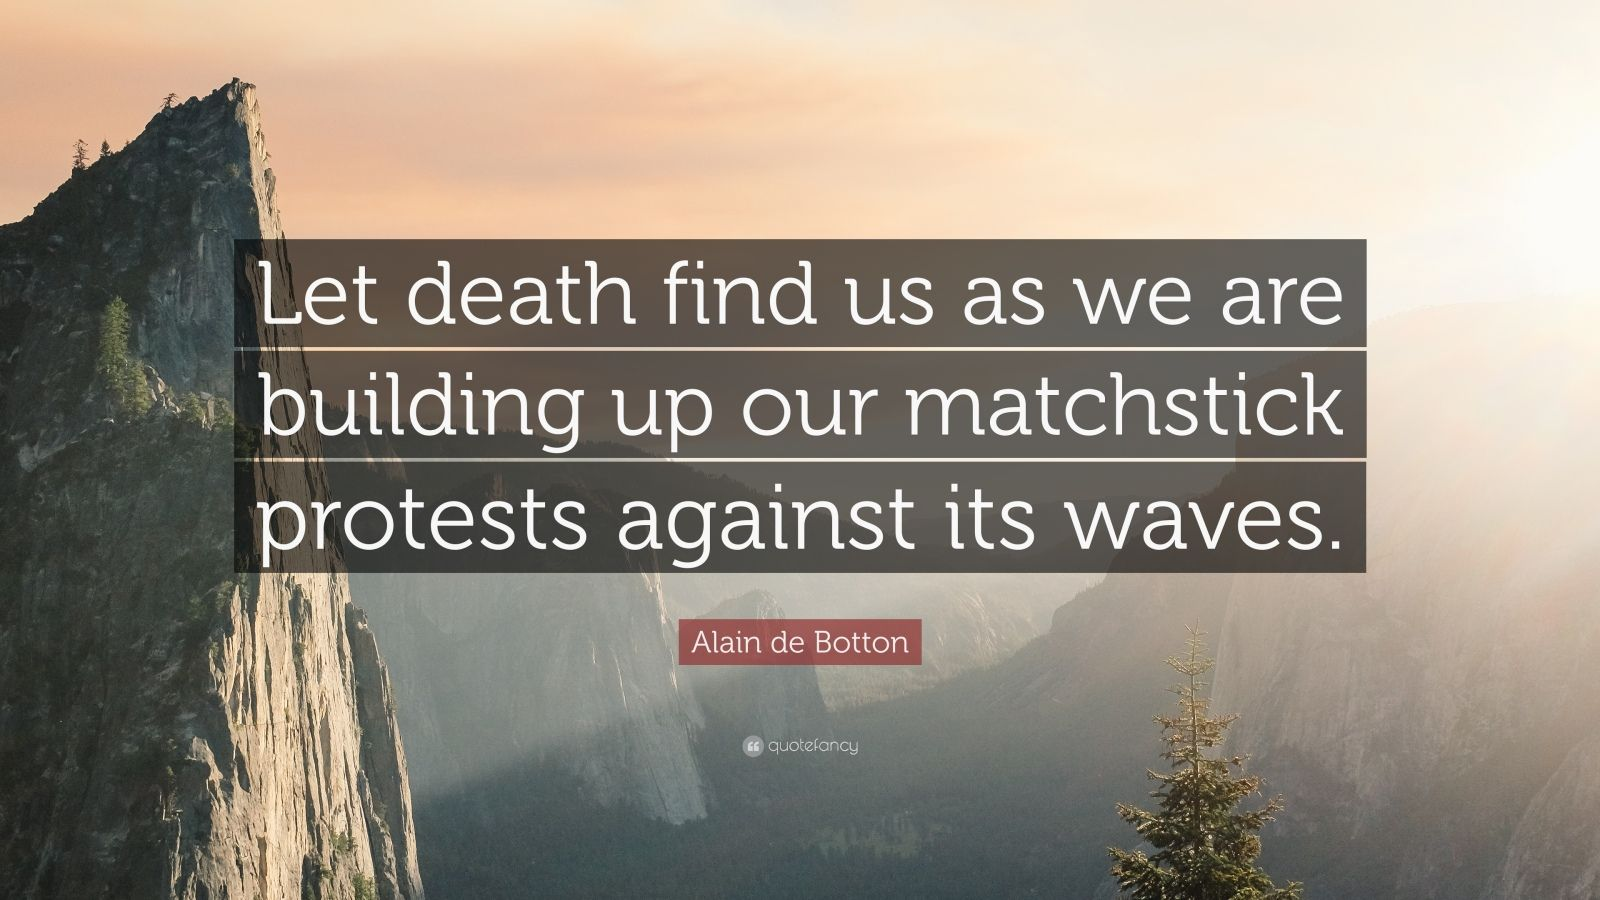 015 Alain Botton Quote Let Death Find Us As We Are Building Up Our Essay Example Essays In Singular De Love Pdf Audiobook Epub Full